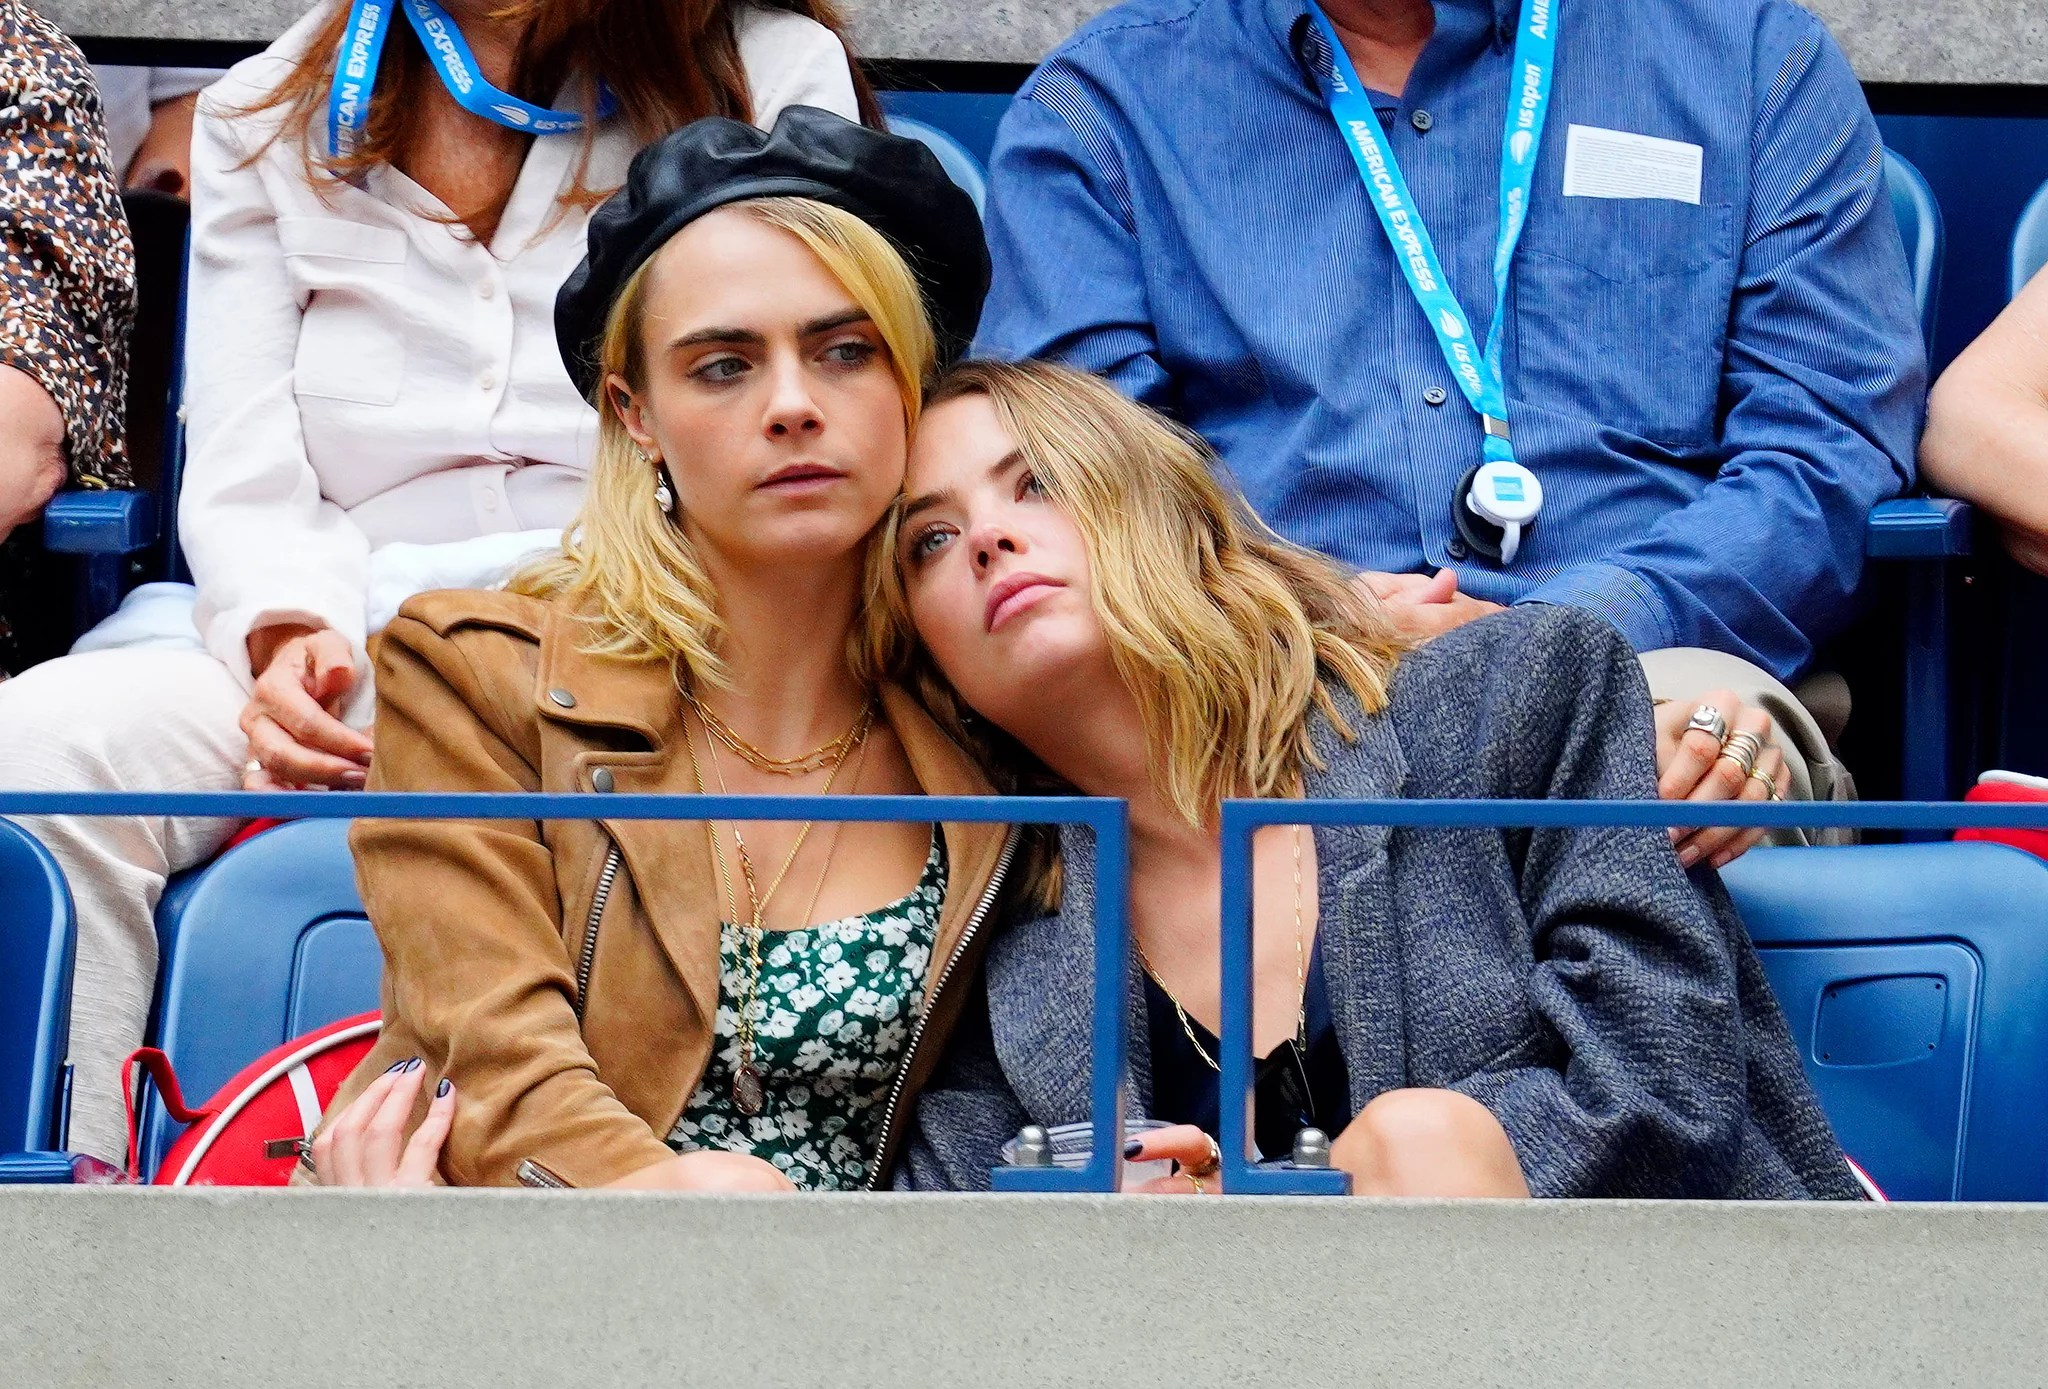 NEW YORK, NEW YORK - SEPTEMBER 07: Cara Delevingne and Ashley Benson attend the 2019 US Open Women's final on September 07, 2019 in New York City. (Photo by Gotham/GC Images)